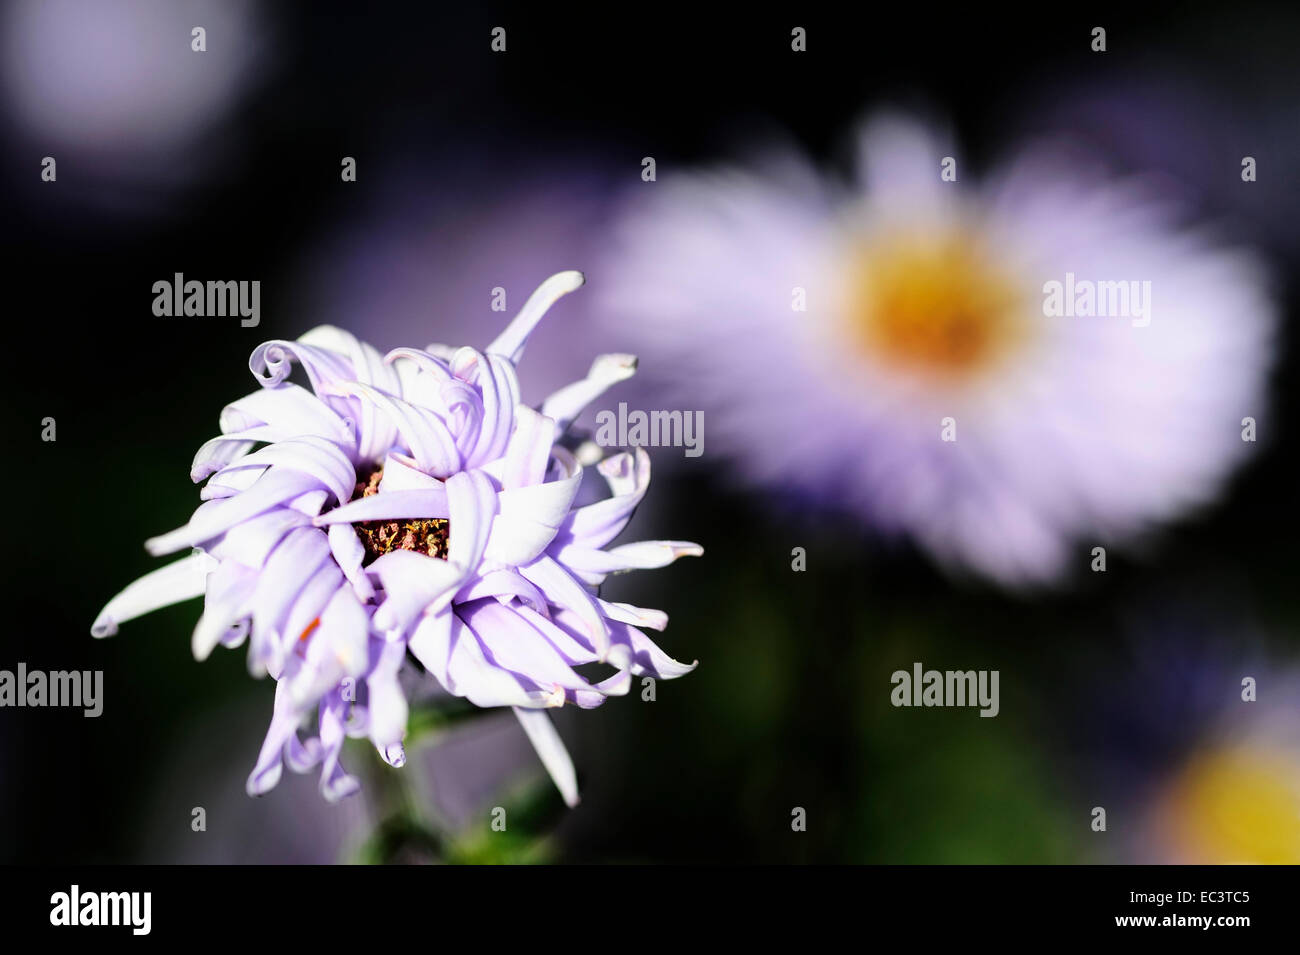 Withered flower, burnout syndrome - Stock Image